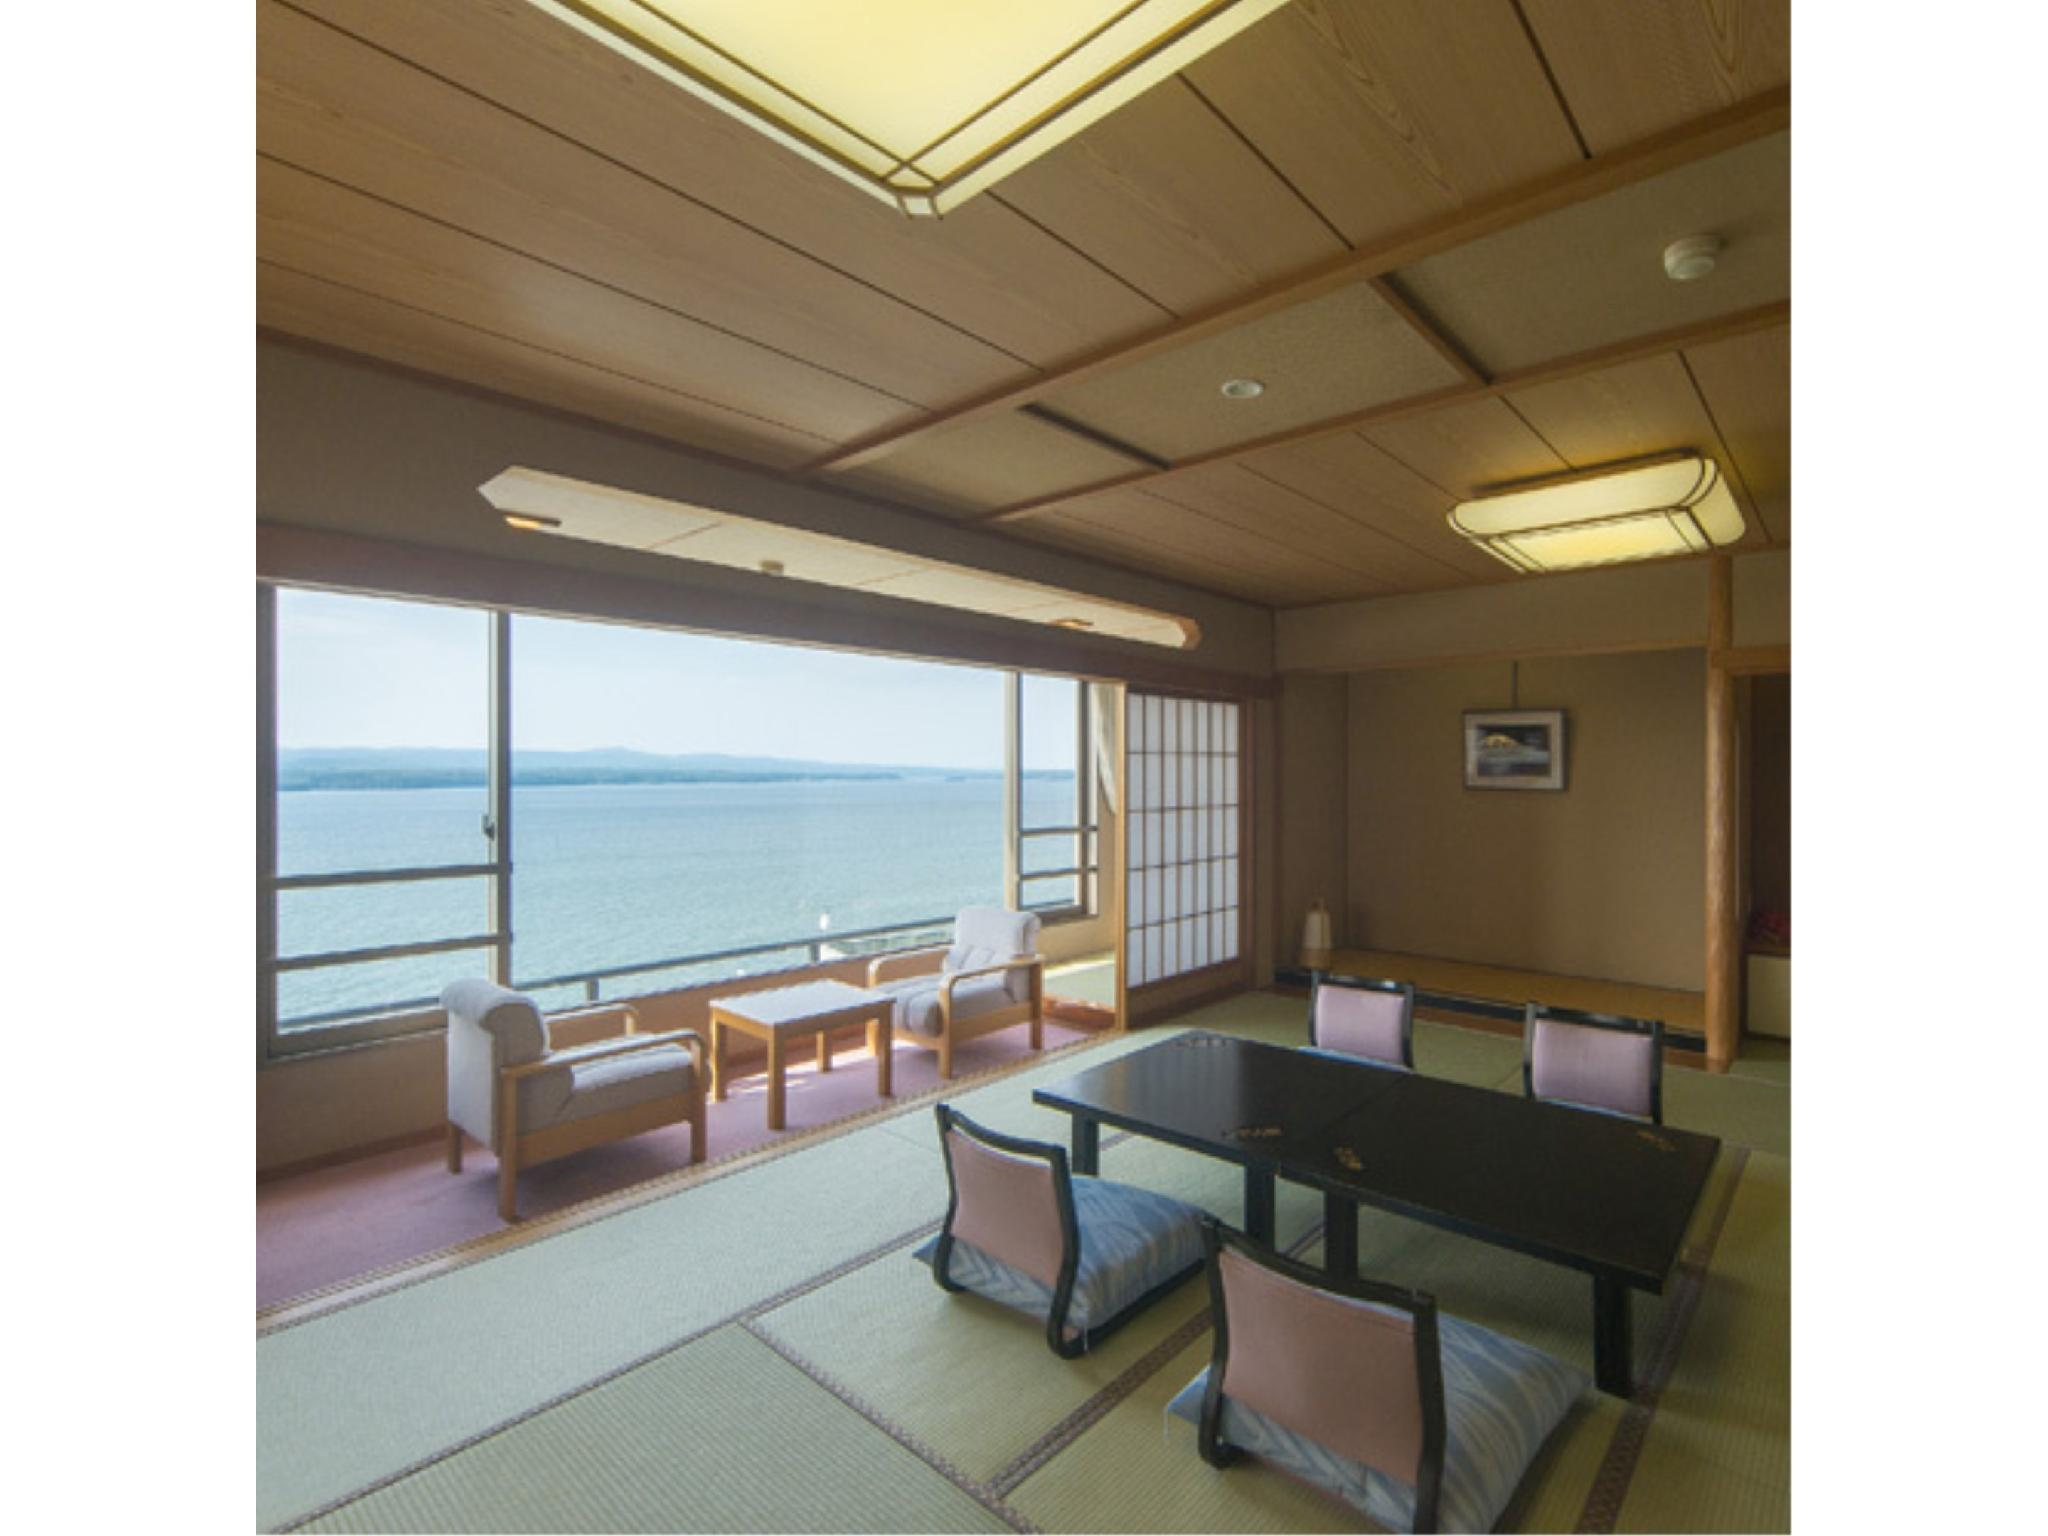 Japanese-style Room (Upper Floors, New Building)